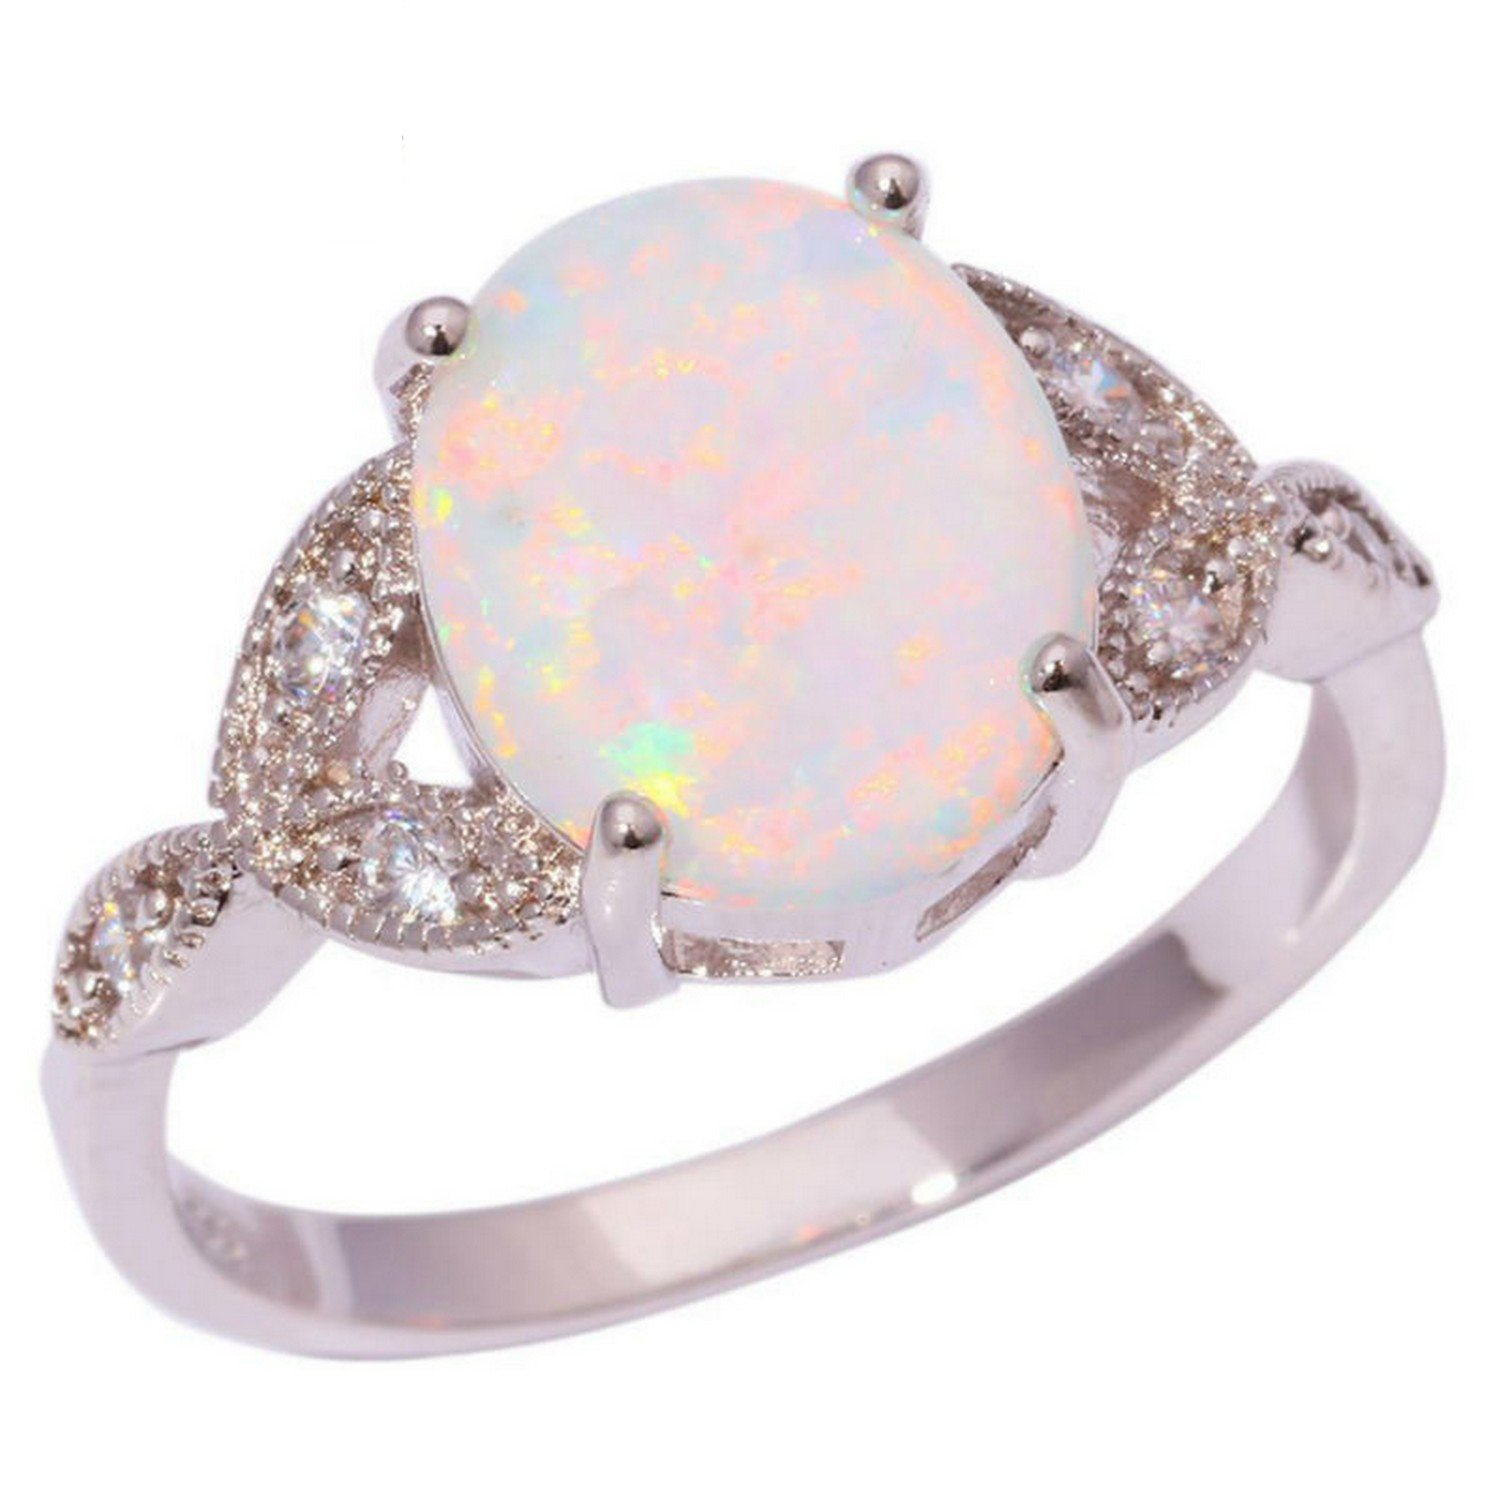 Slyq Jewelry Created White Opal Cubic Zirconia cz engagement ring